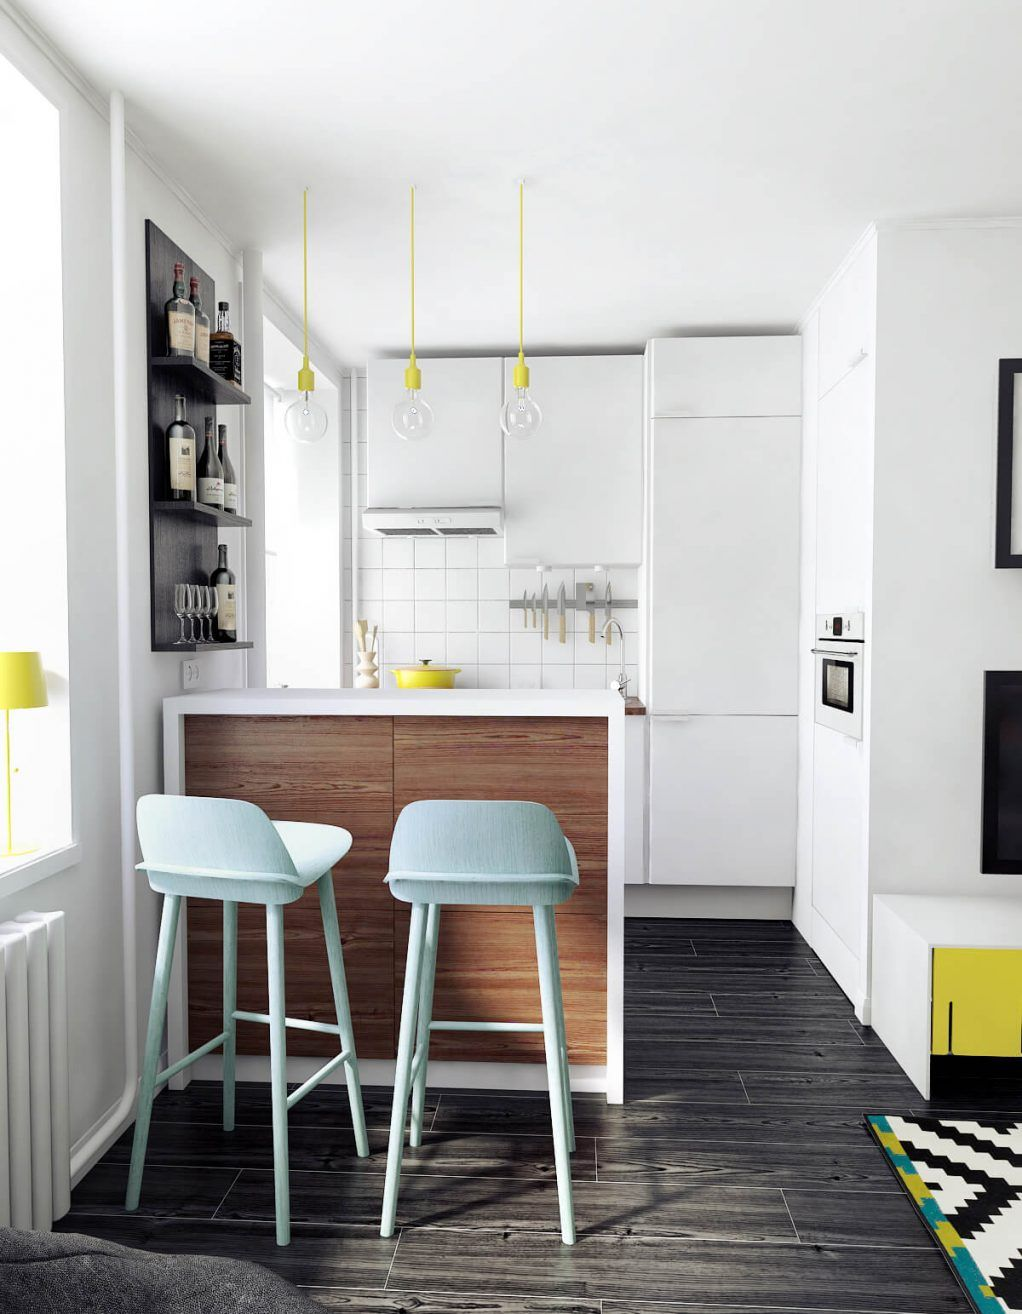 Genial Simple And Clever Space Saving Ideas For Small Kitchens